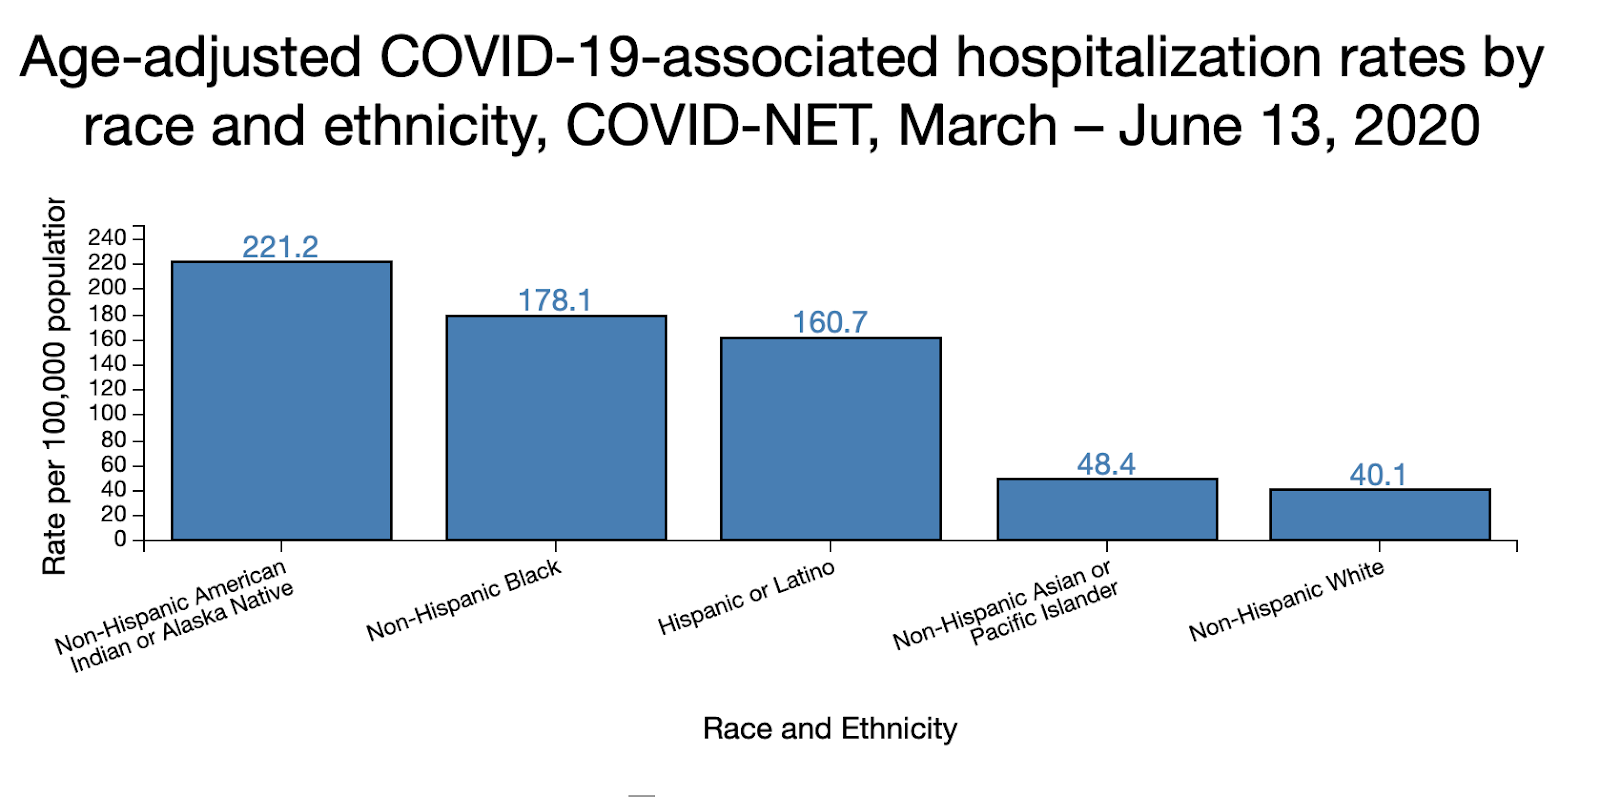 CDC COVID-19 hospitalizations chart by race and ethnicity